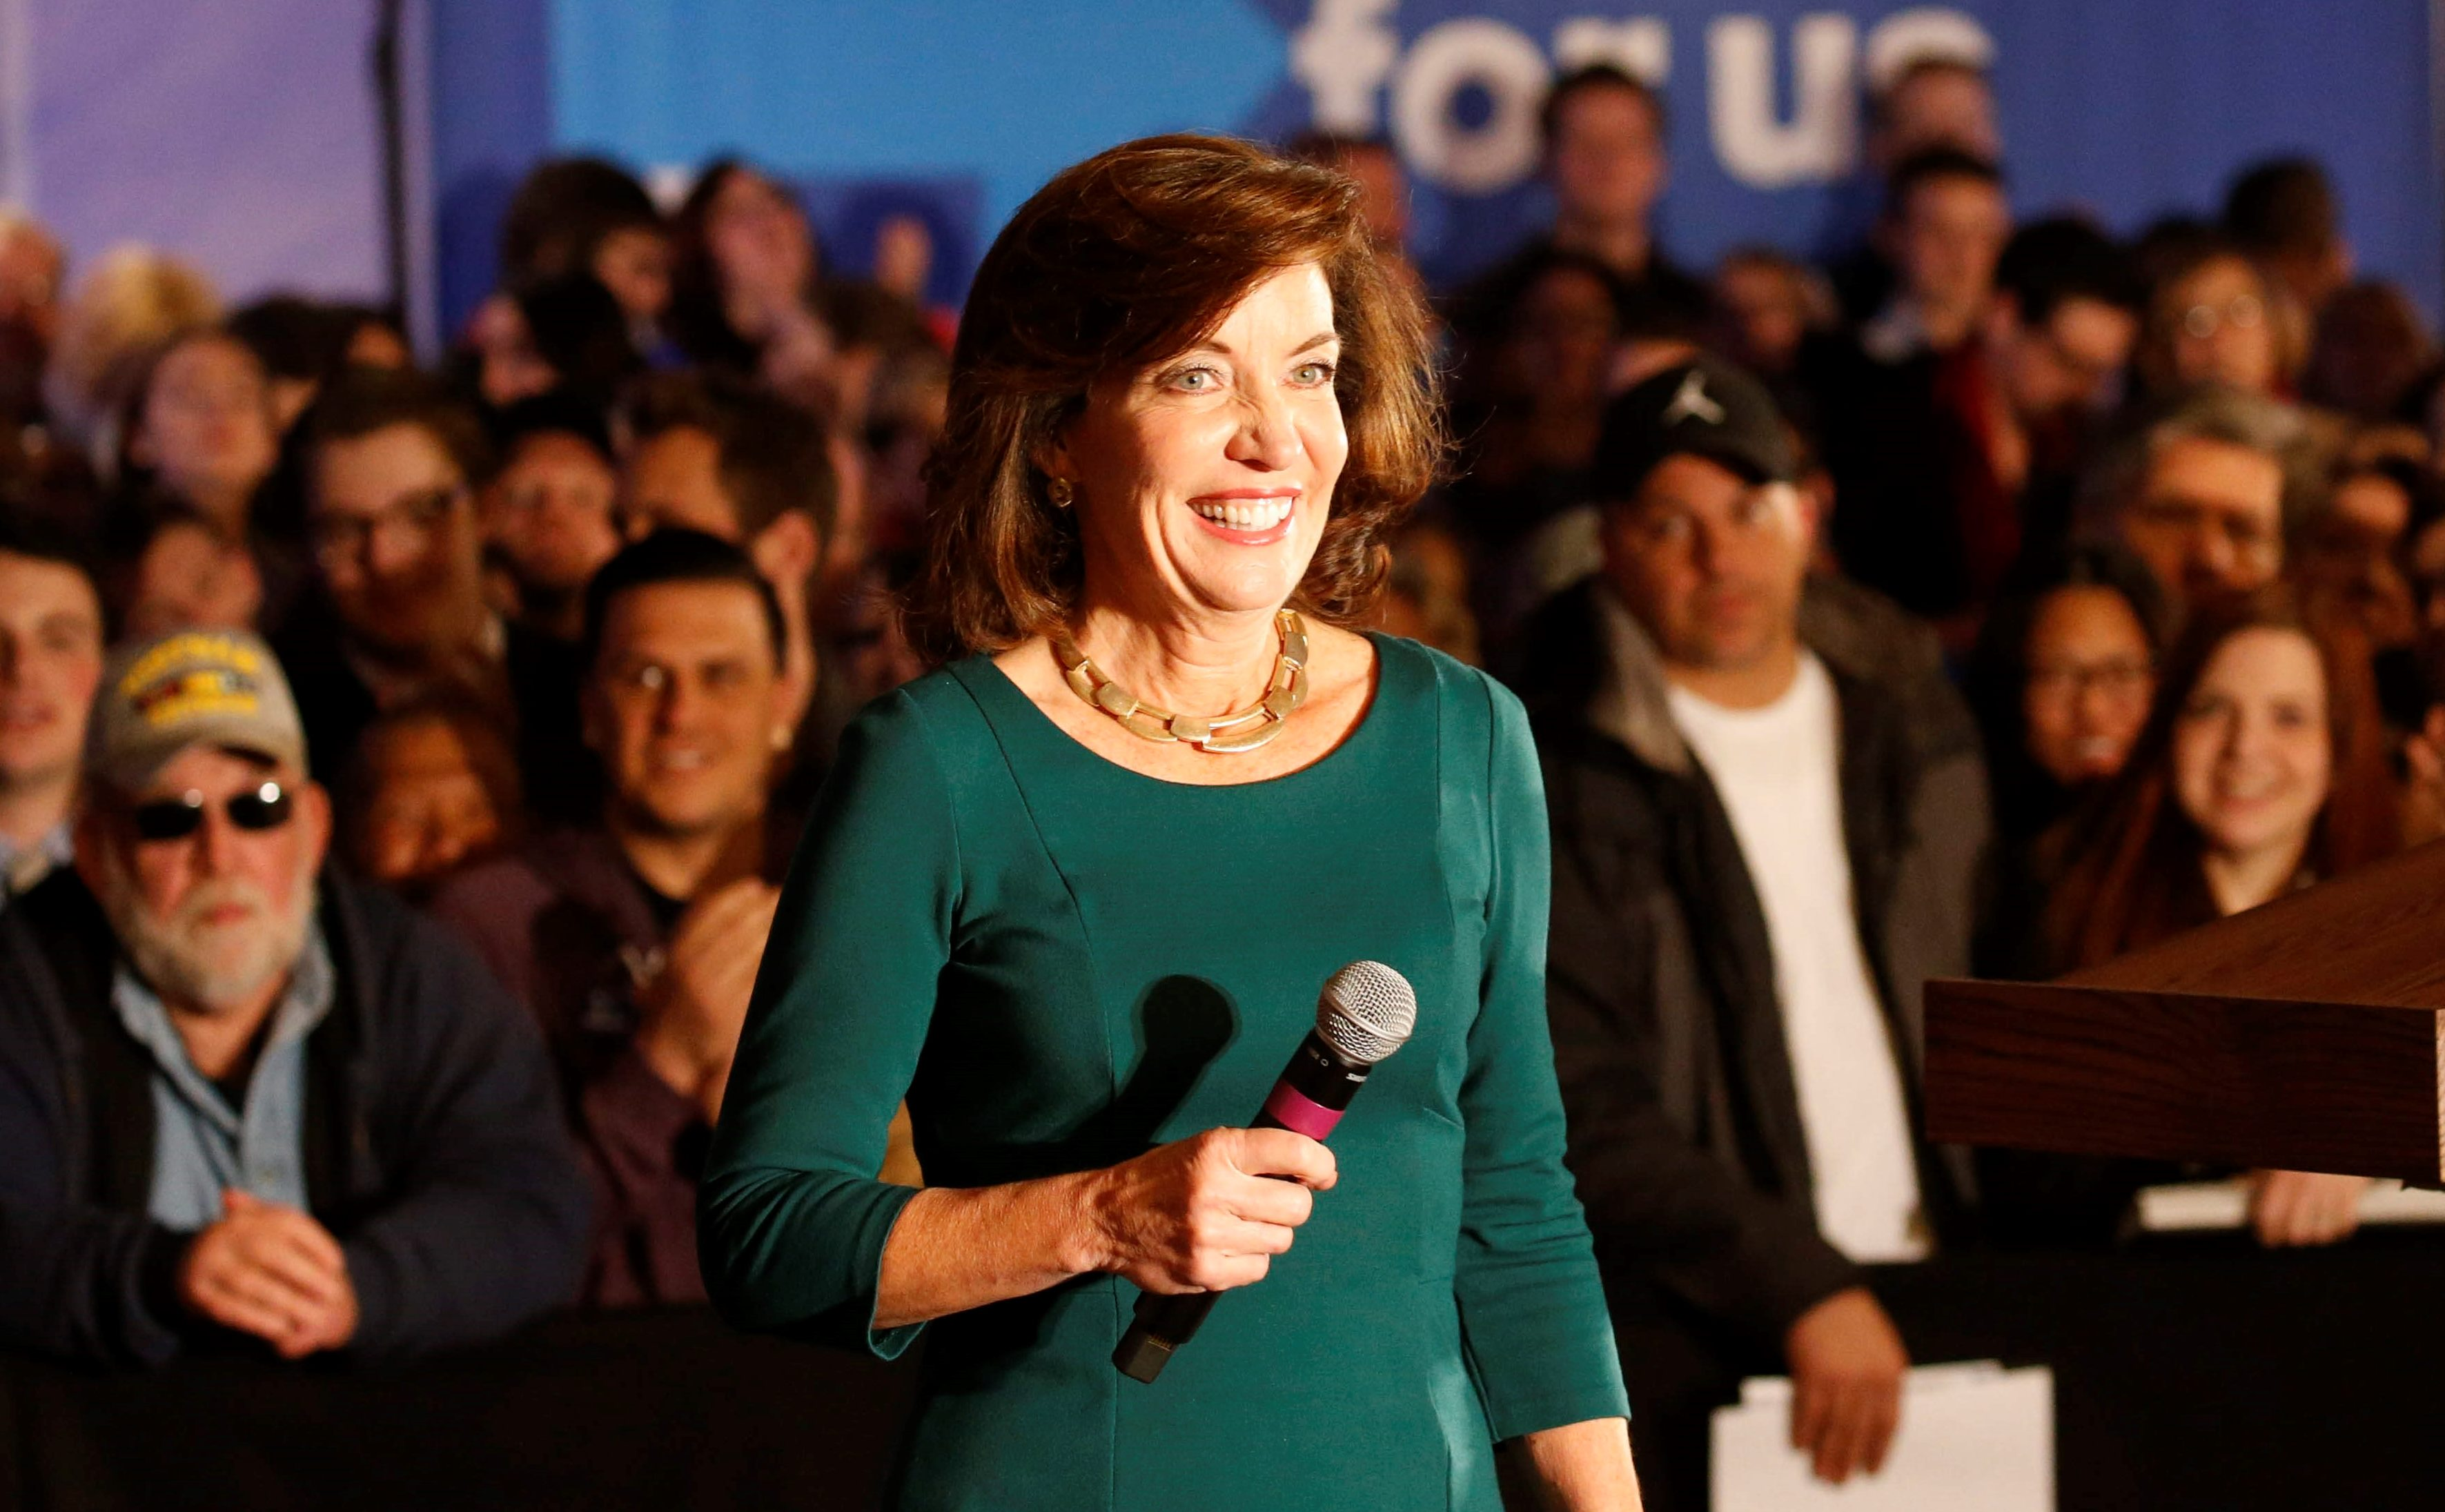 Lt. Gov. Kathy Hochul has lashed out at Rep. John Faso, who co-authored the Medicaid amendment to the GOP health care bill with Rep. Chris Collins. (Derek Gee/Buffalo News)